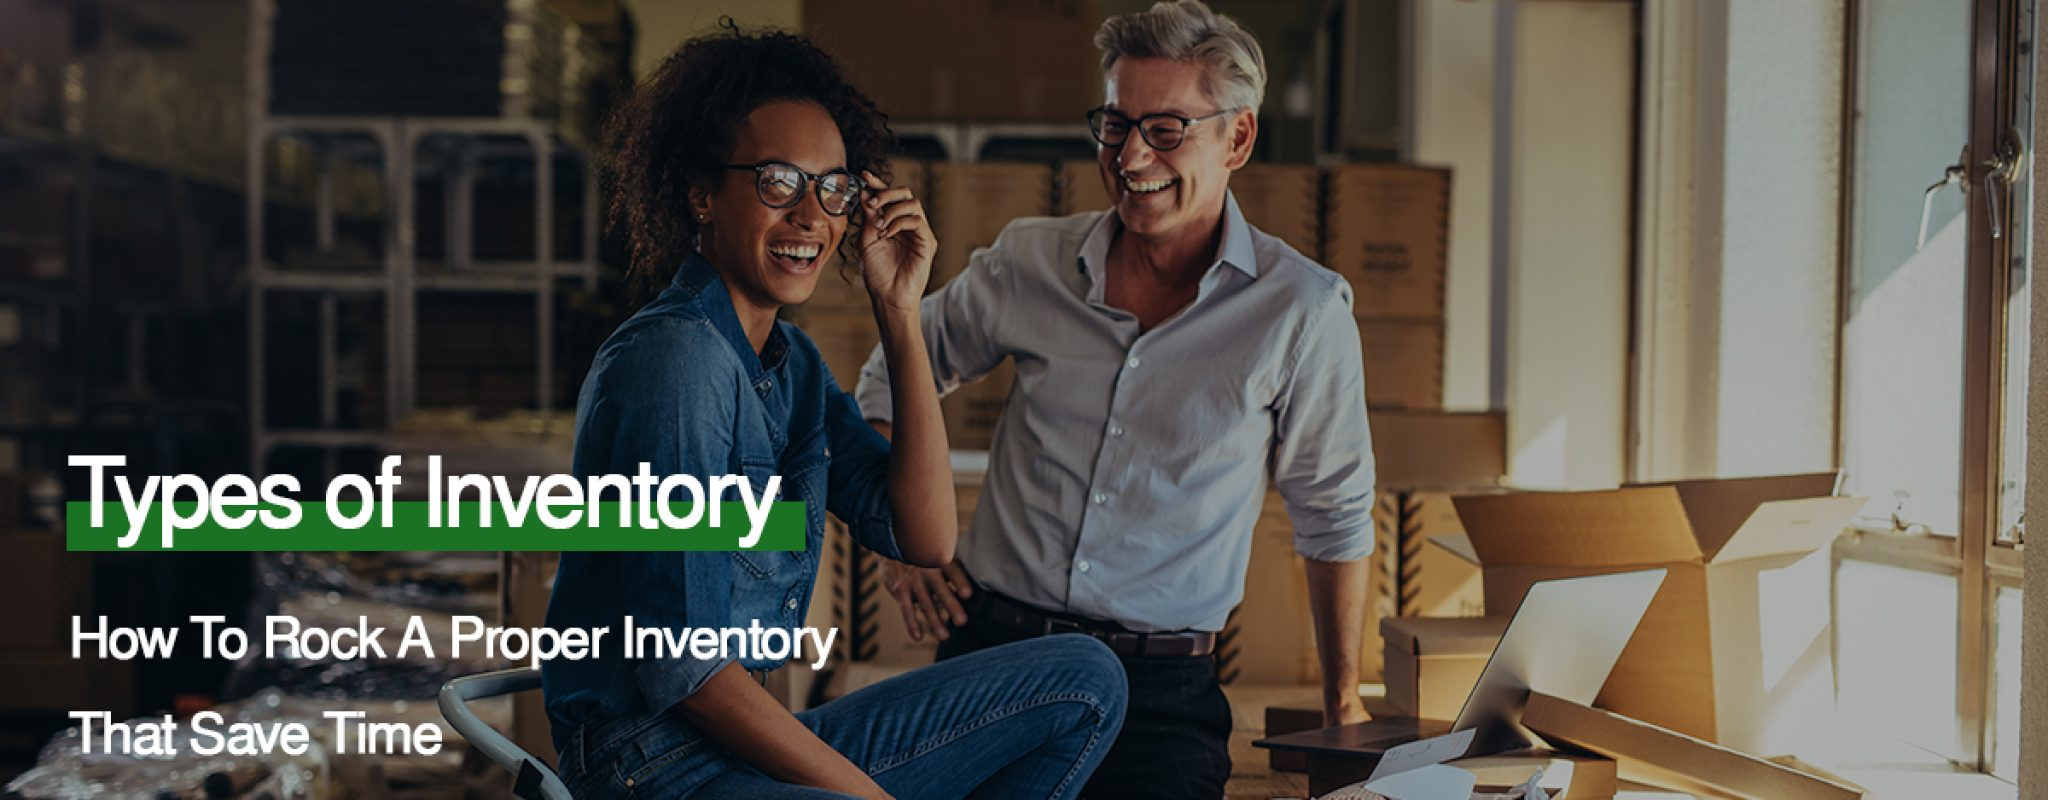 How To Rock A Proper Inventory That Save Time